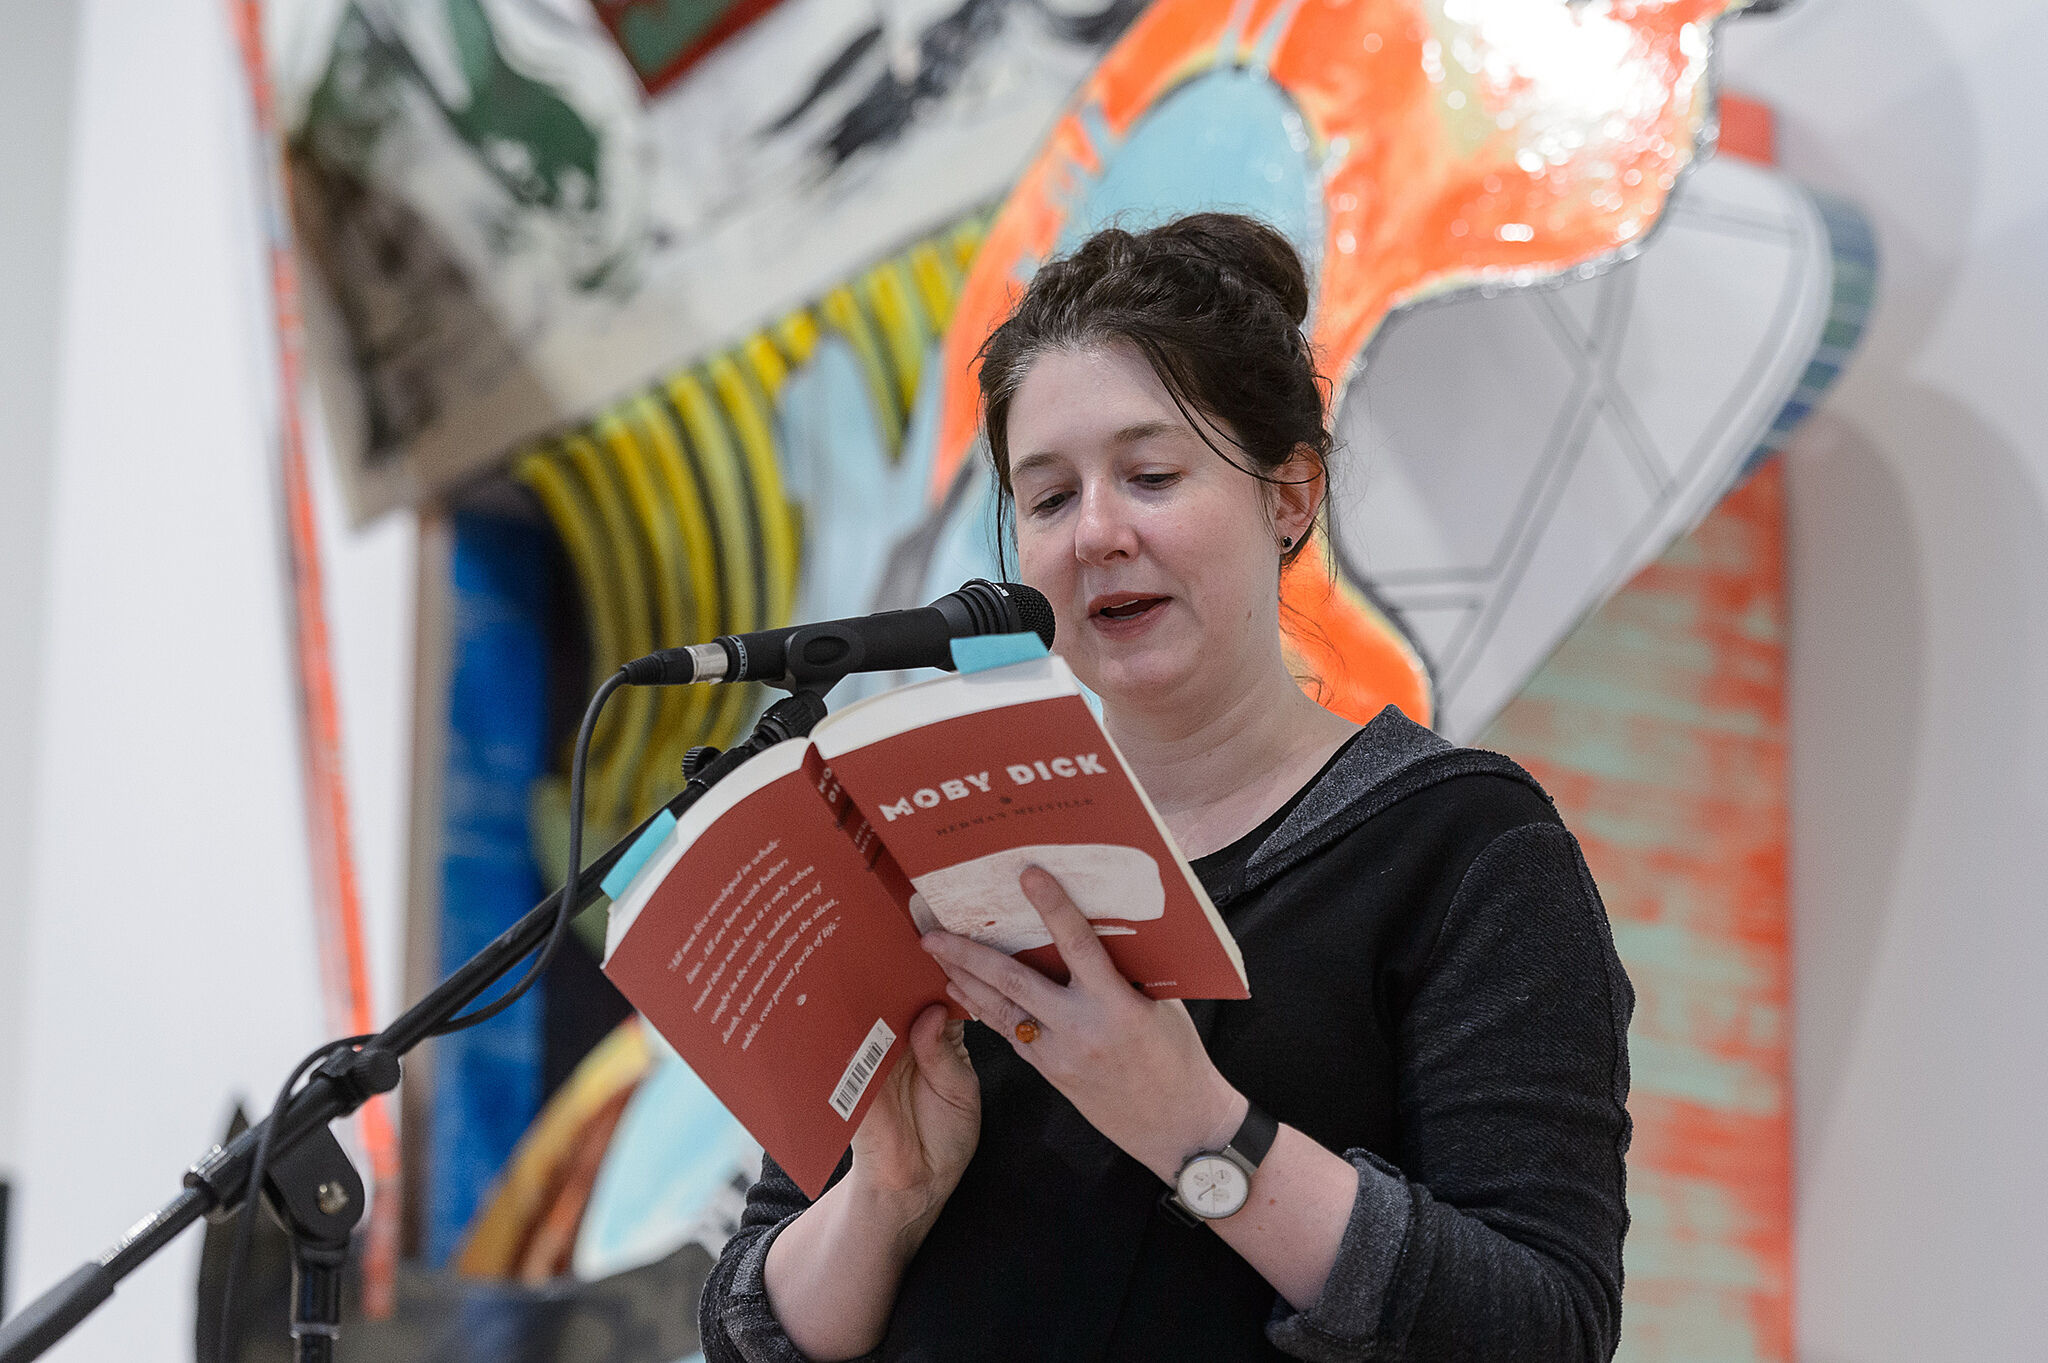 Woman reading from Moby Dick.